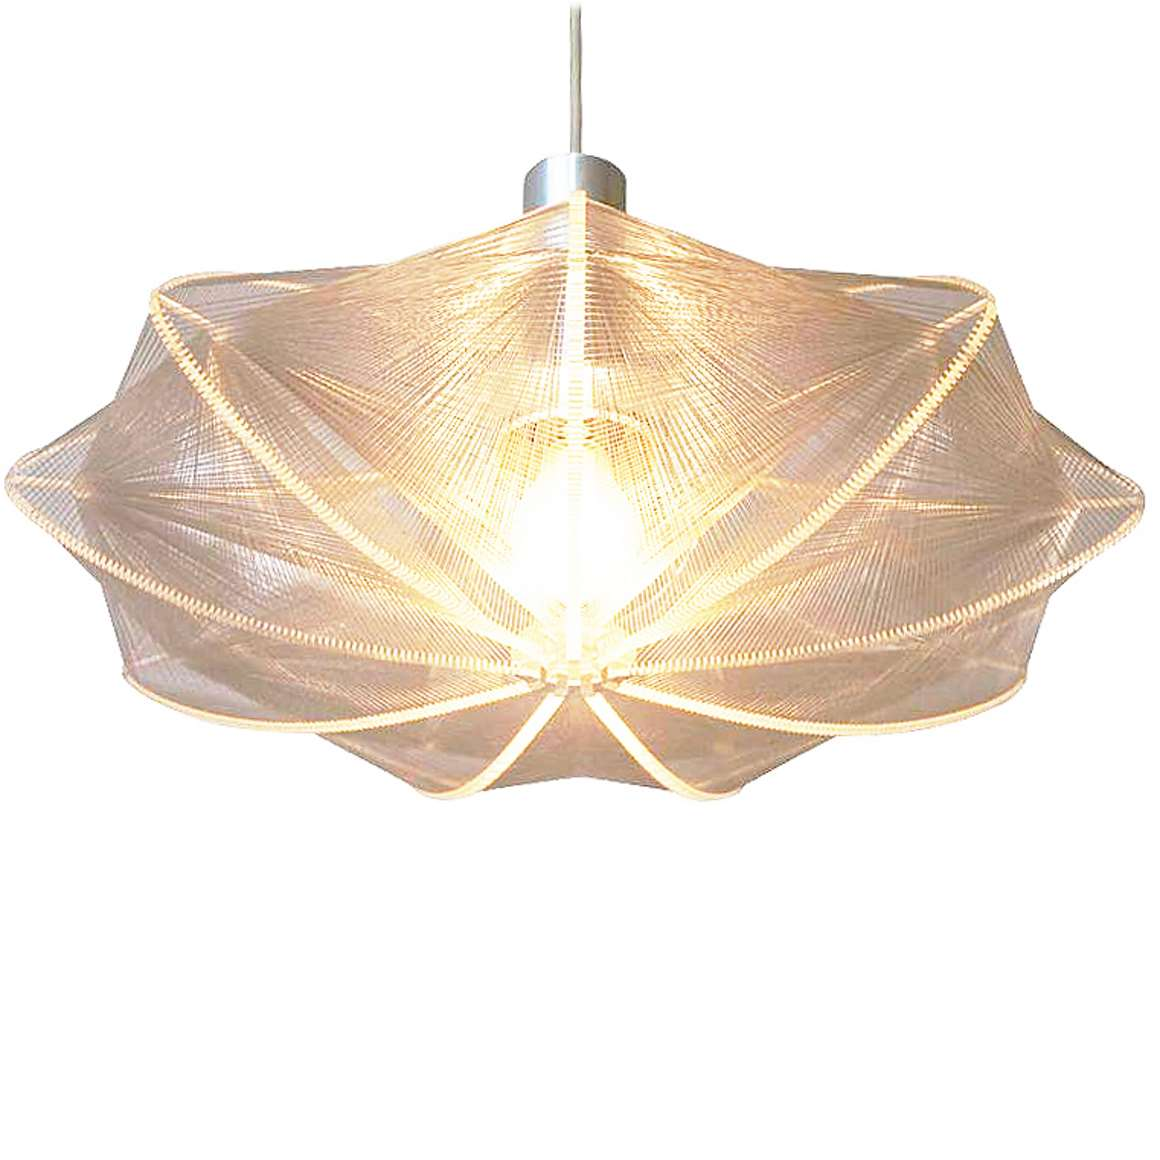 Paul Secon Sompex Pendant Lamp